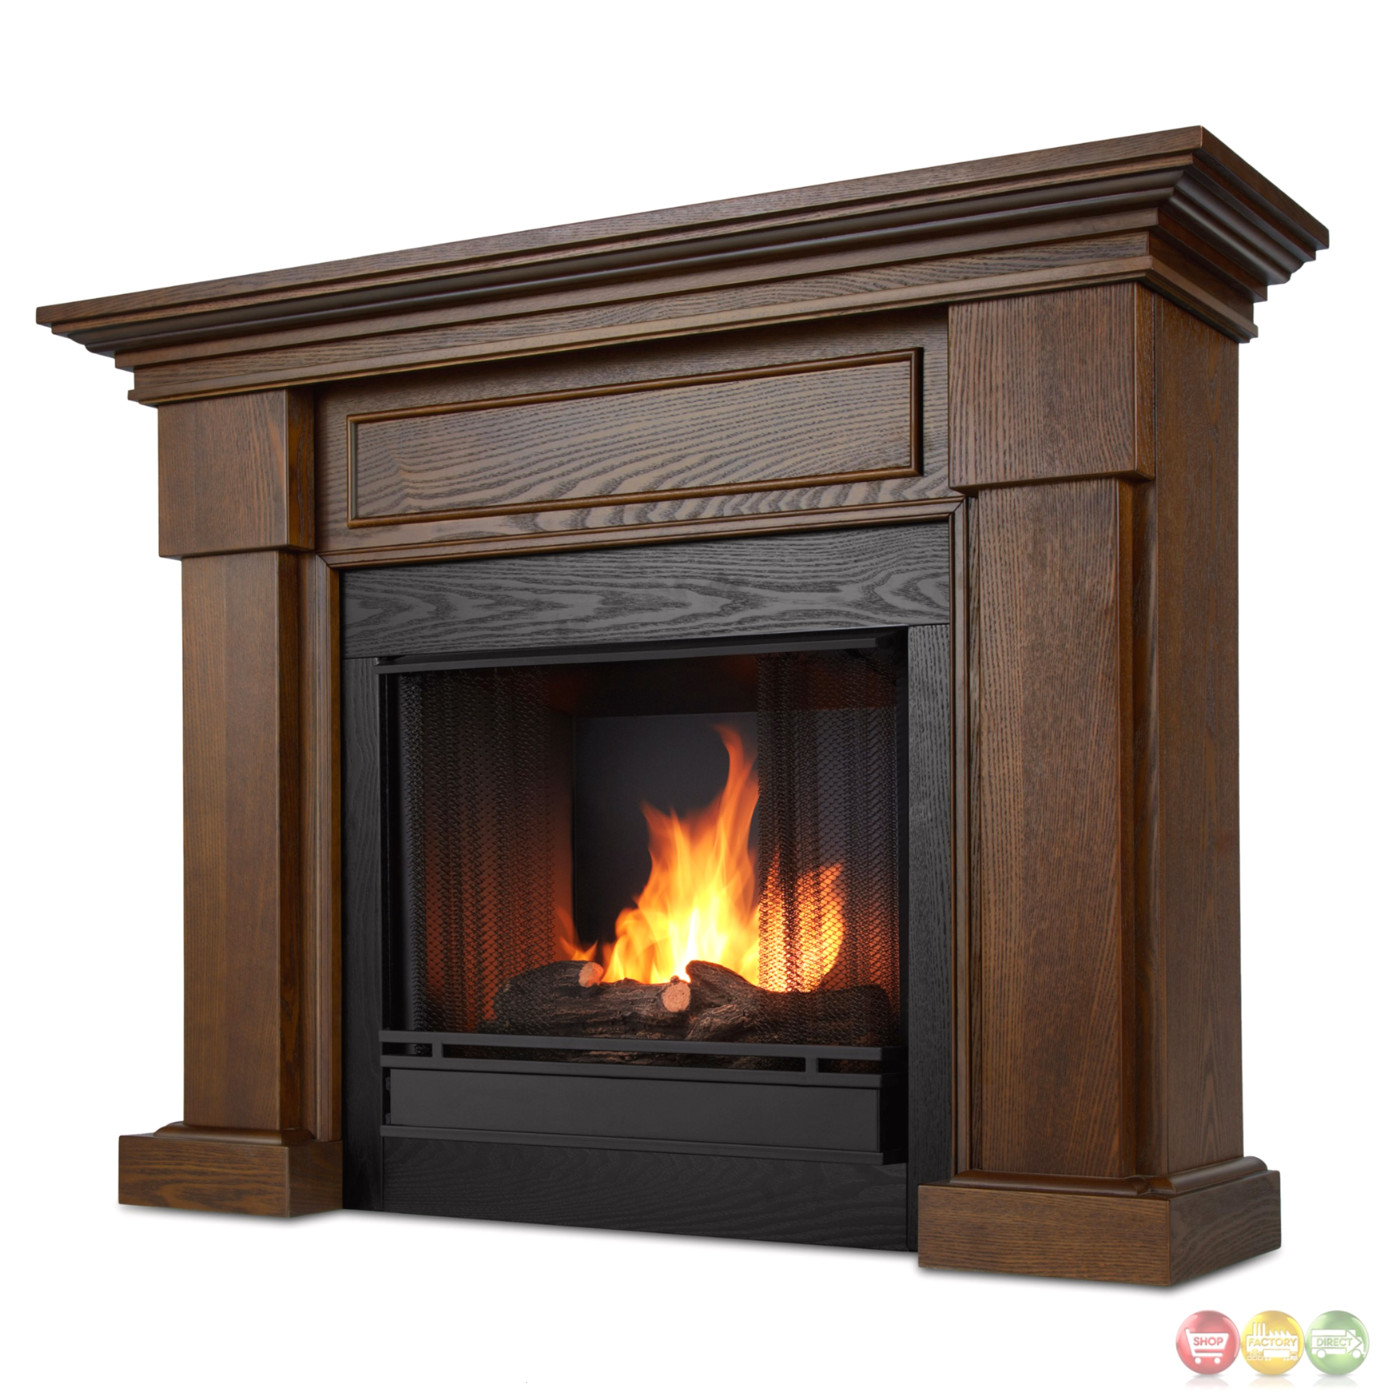 Hillcrest Ventless Gel Fuel Fireplace In Chestnut Oak With Logs 48x39